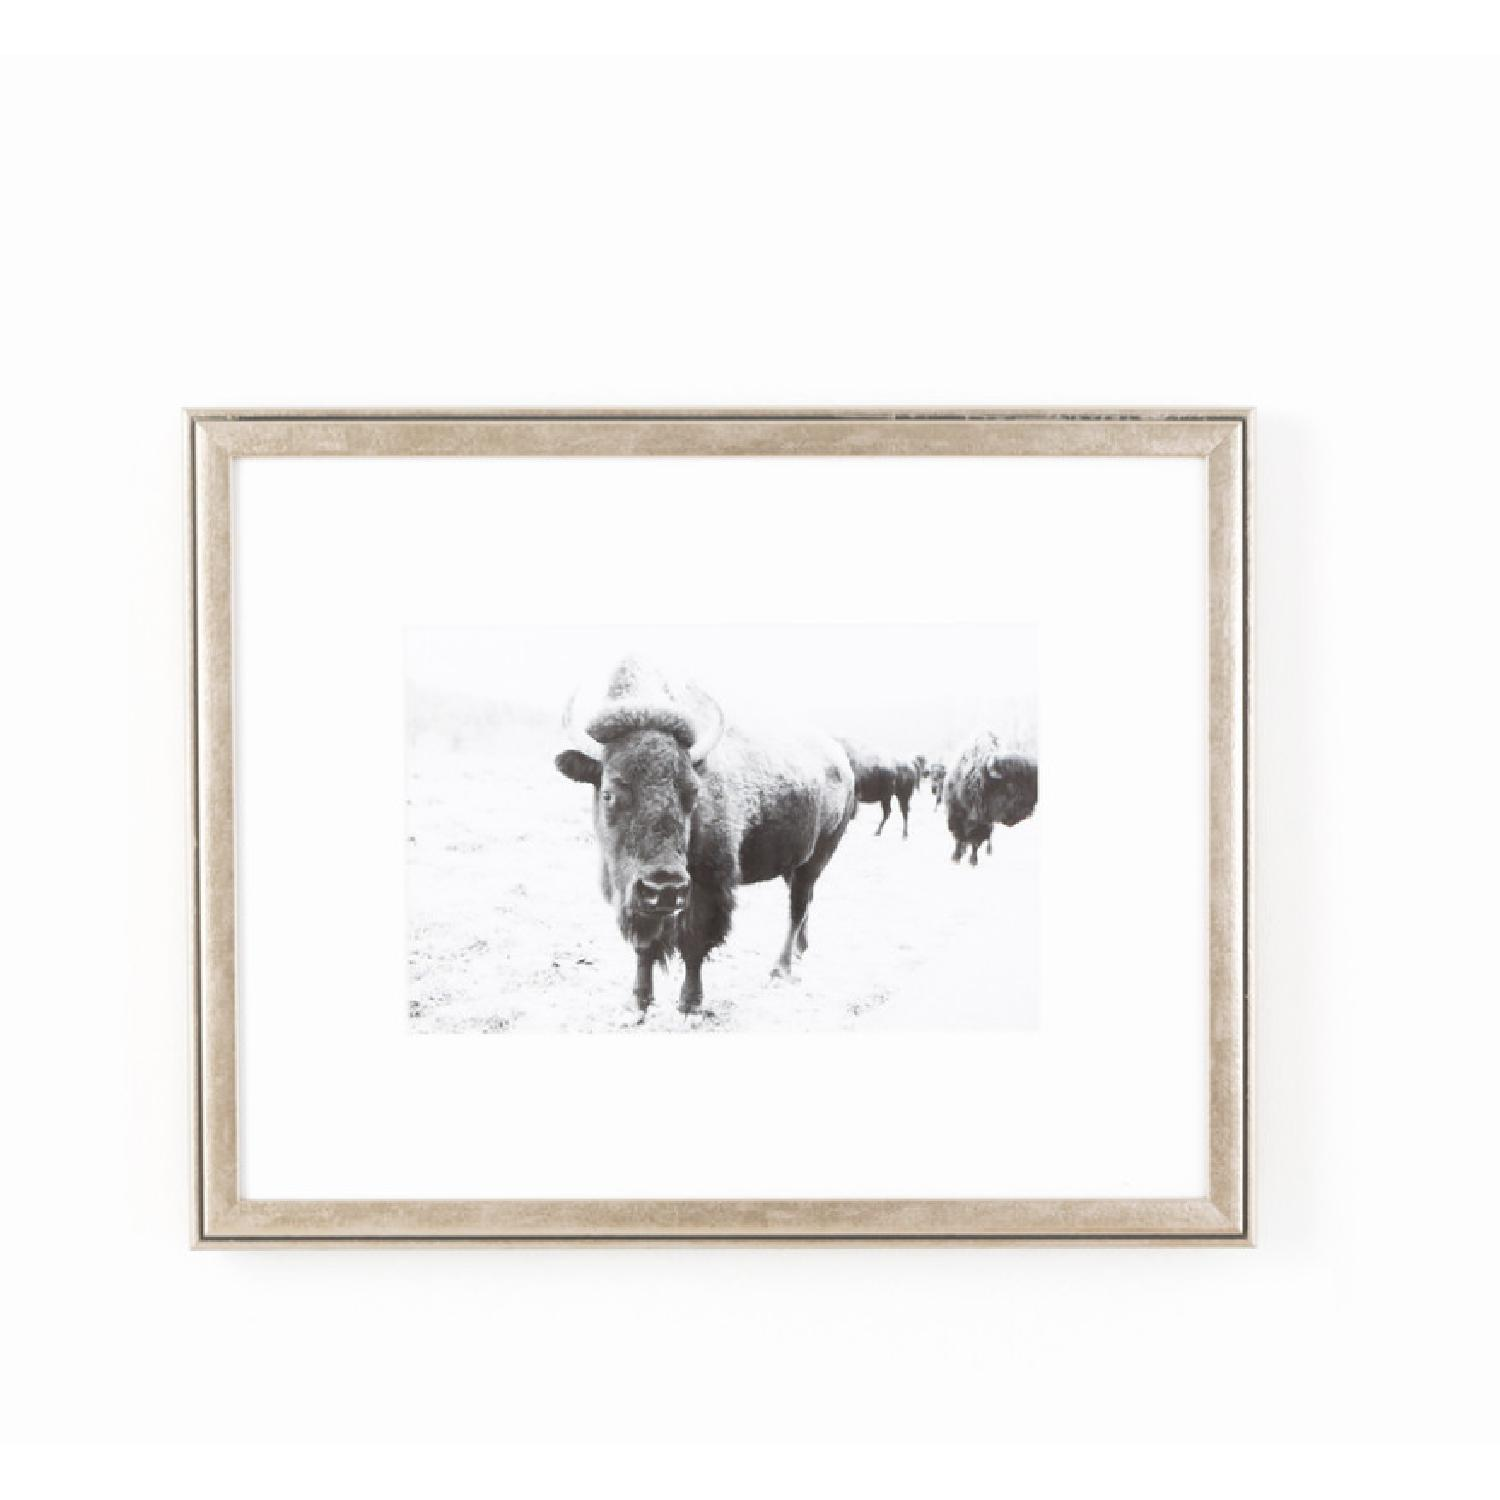 Why Hello Framed Wall Art - image-3